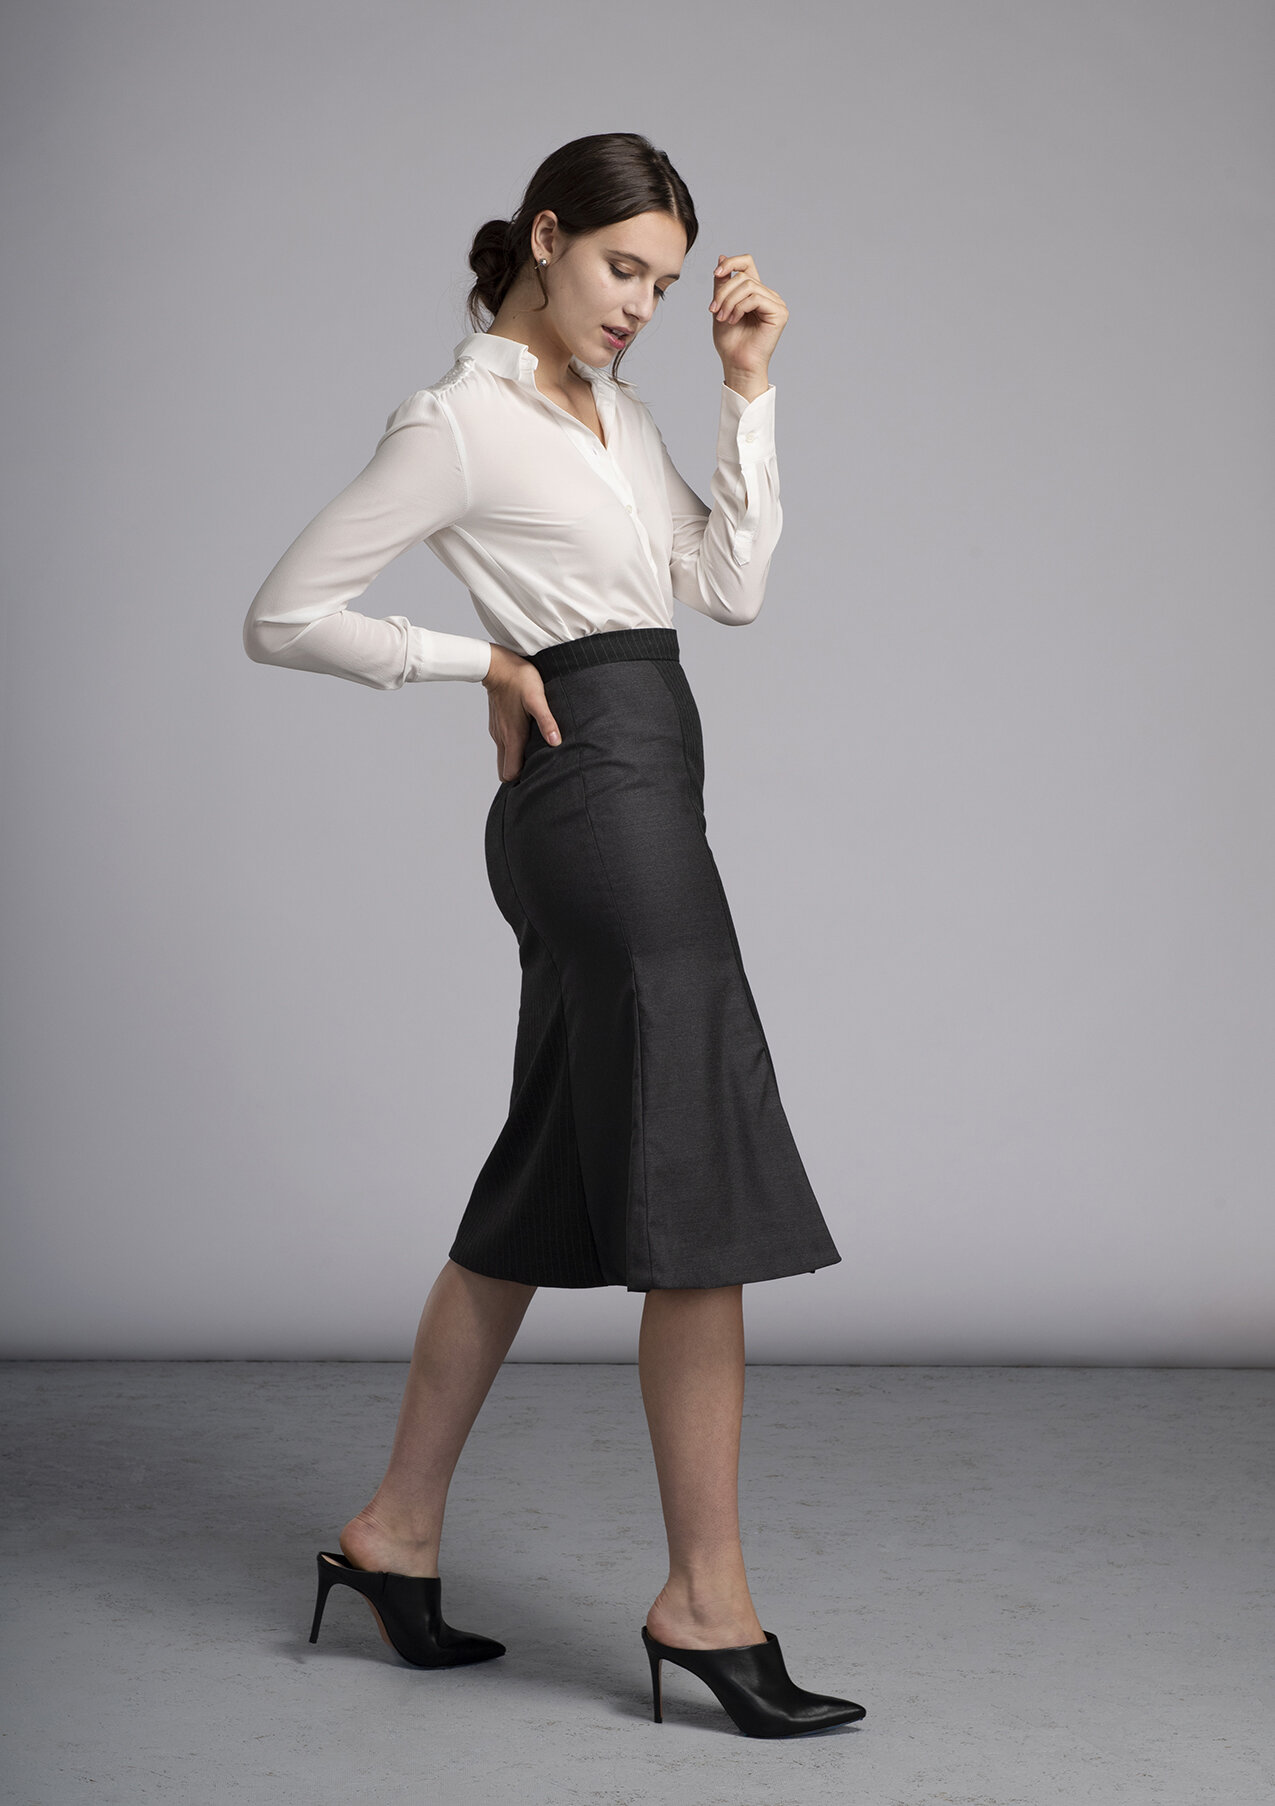 Made-to-measure Stevie Blouse and Morgan Bell Skirt